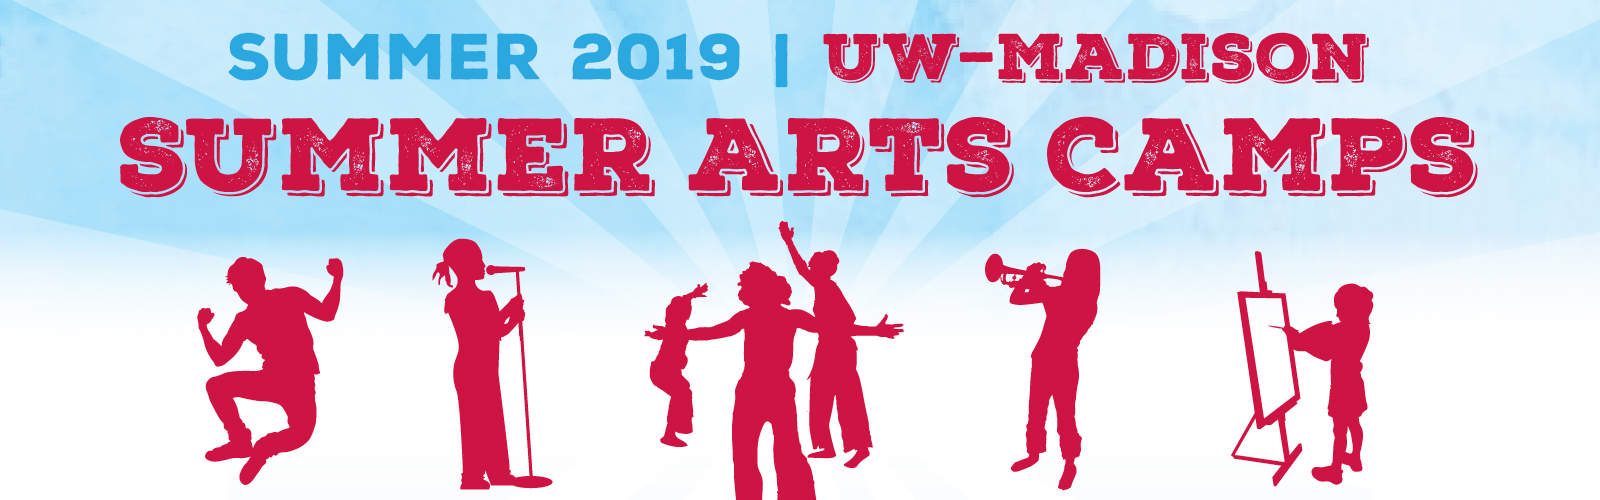 Summer Arts Camps 2019 UW–Madison Summer Arts Camps banner